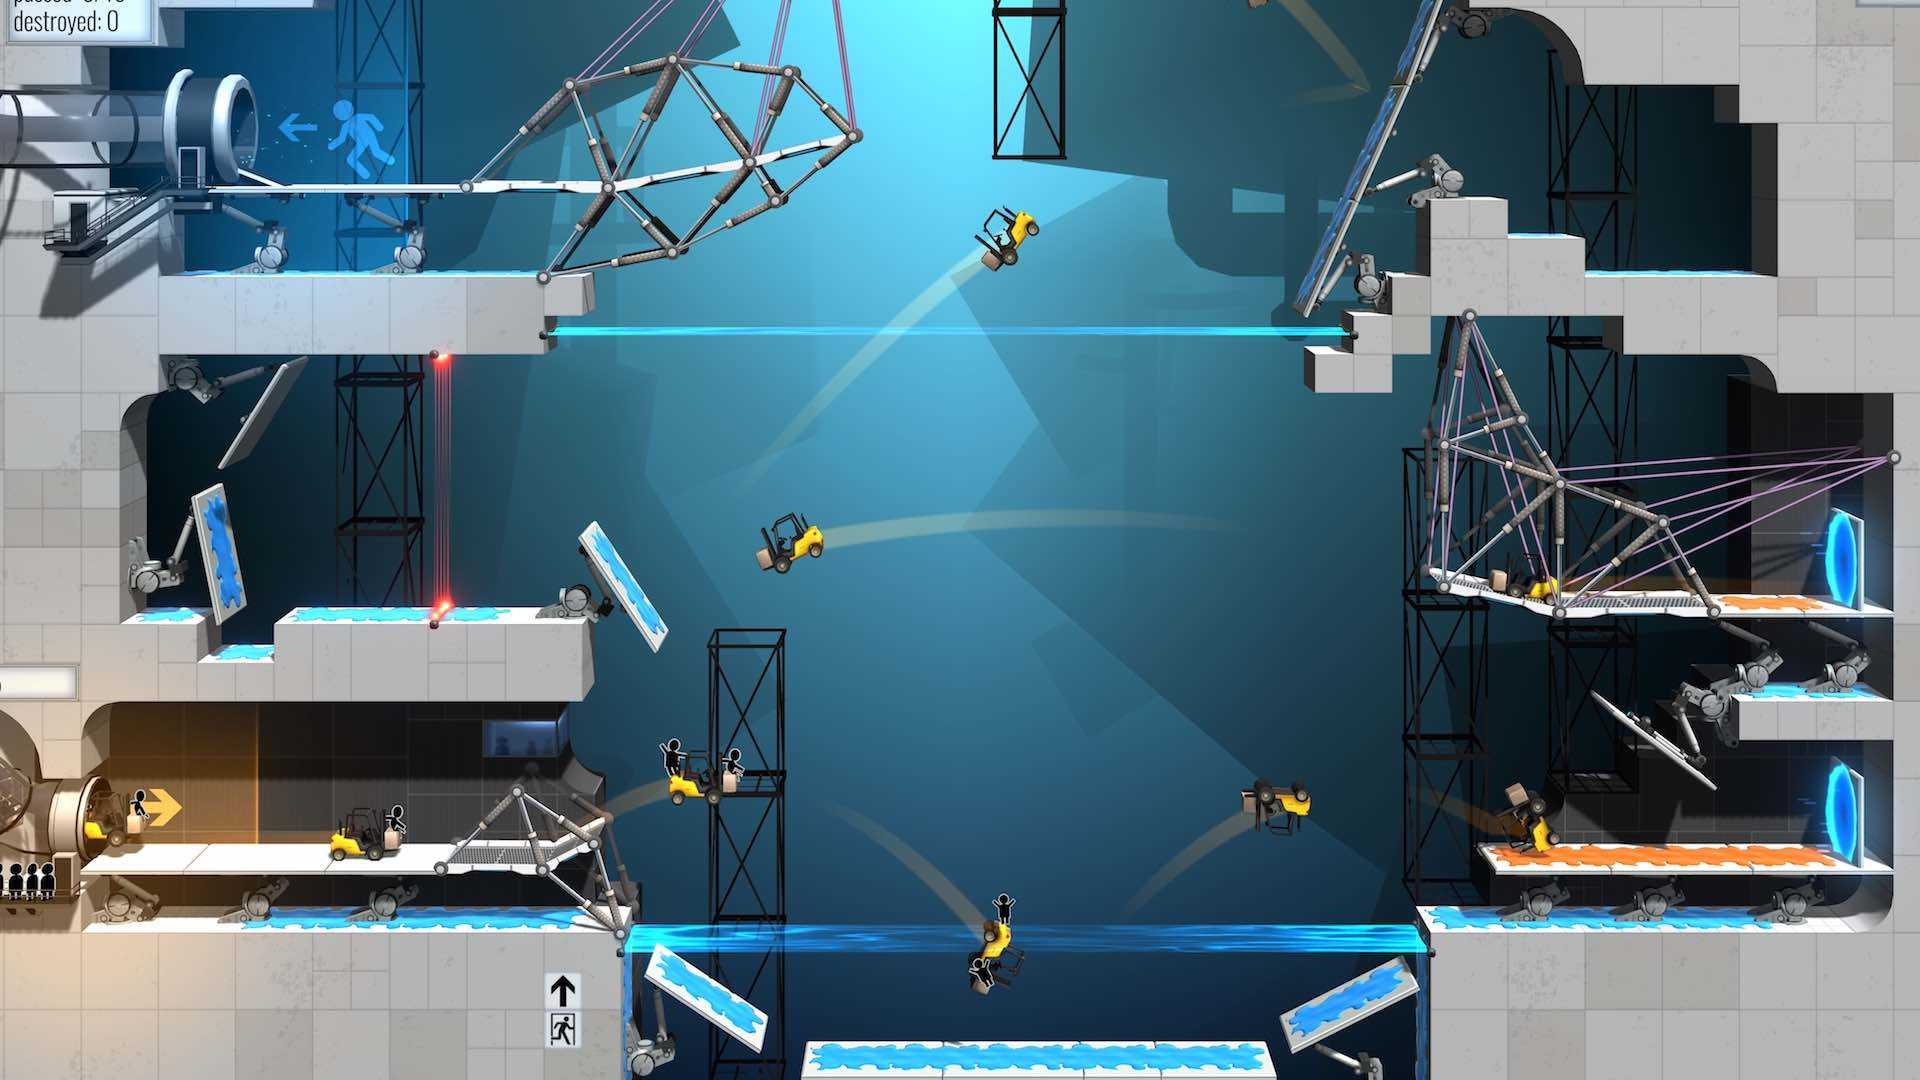 bridge-constructor-portal-screenshot-3